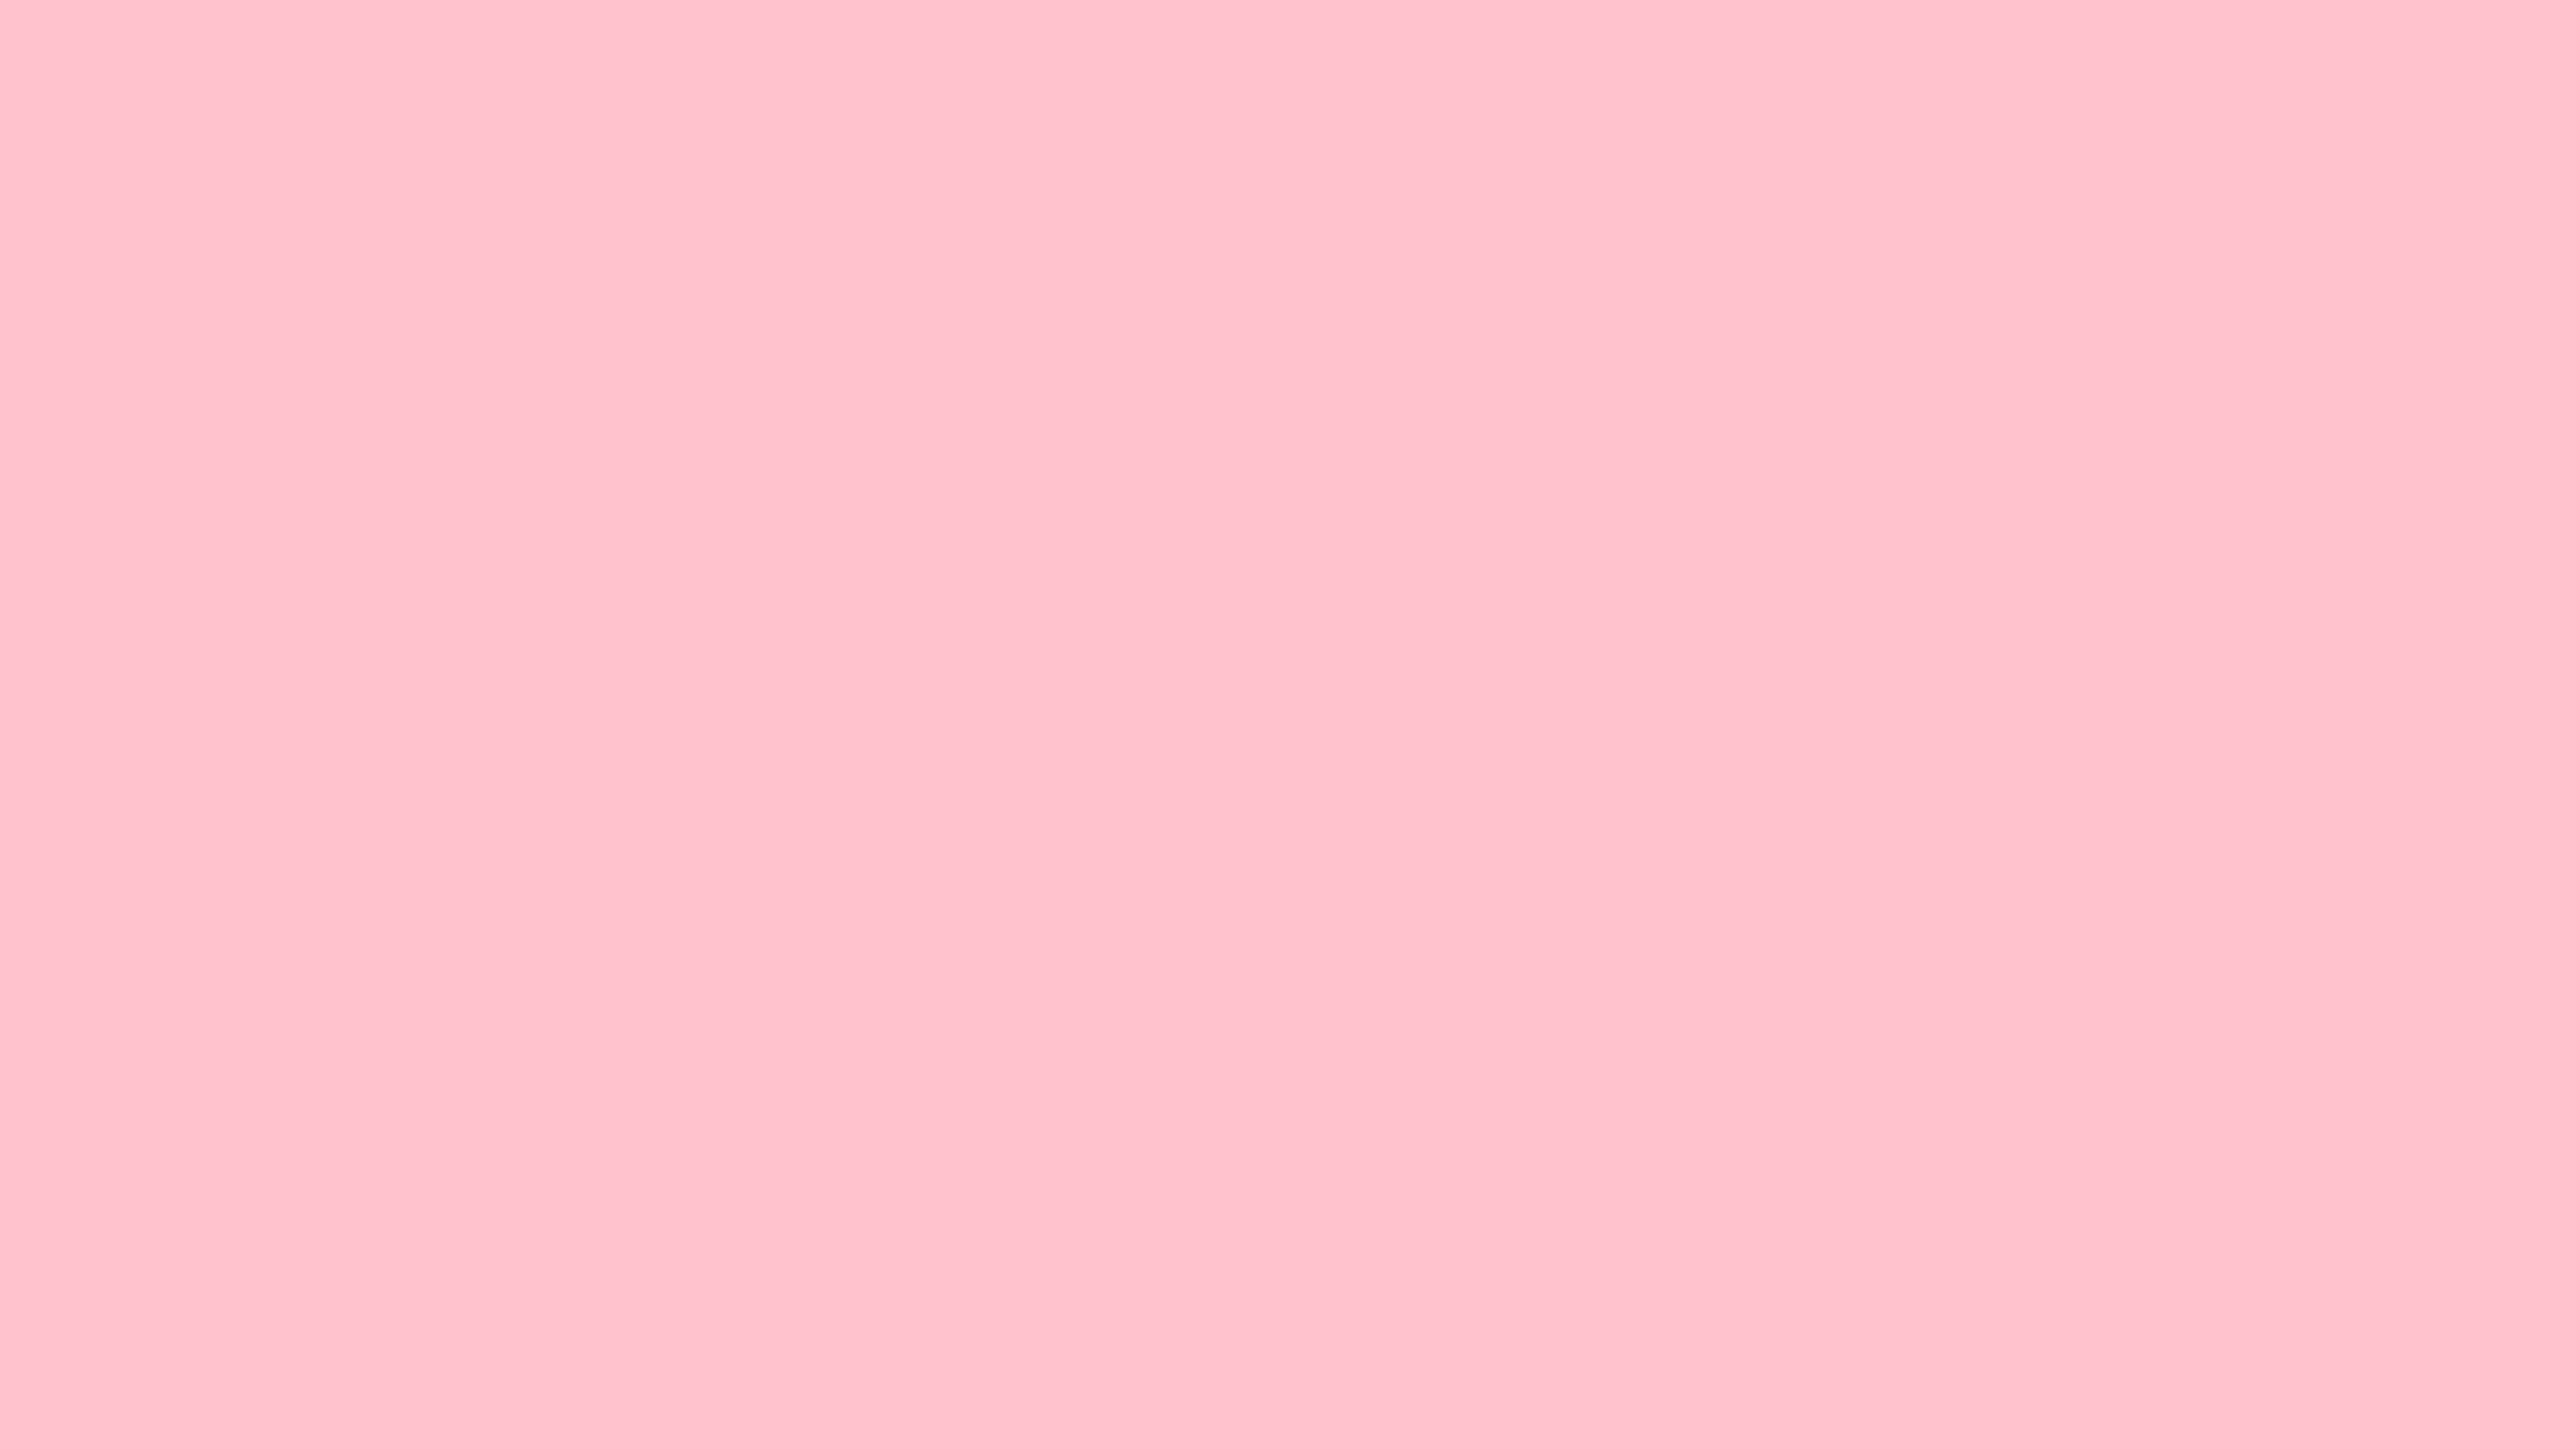 4096x2304 Bubble Gum Solid Color Background